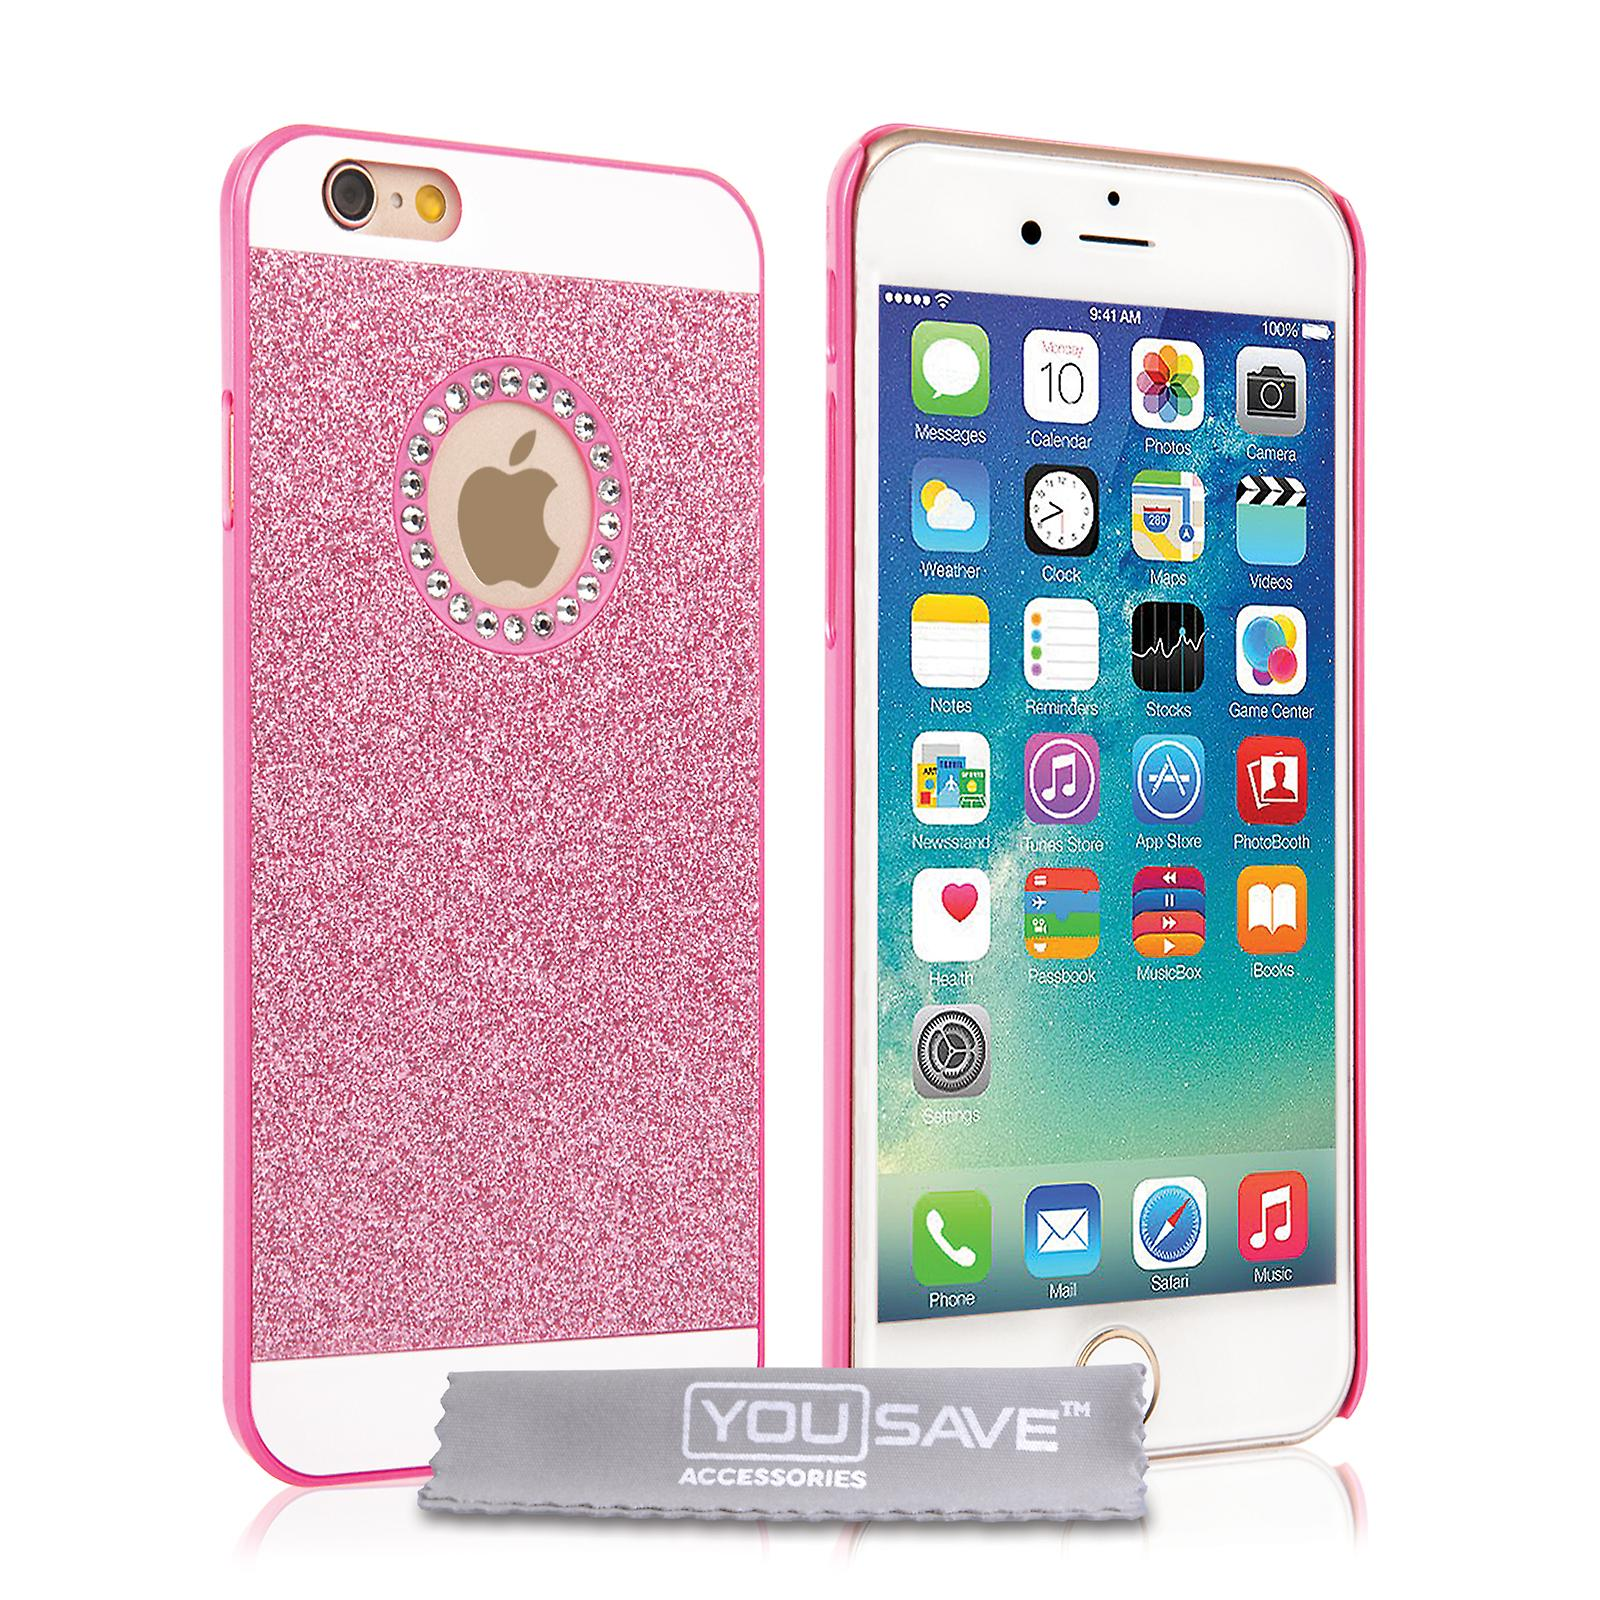 Yousave Accessories Iphone SE Flash Diamond Case - Pink